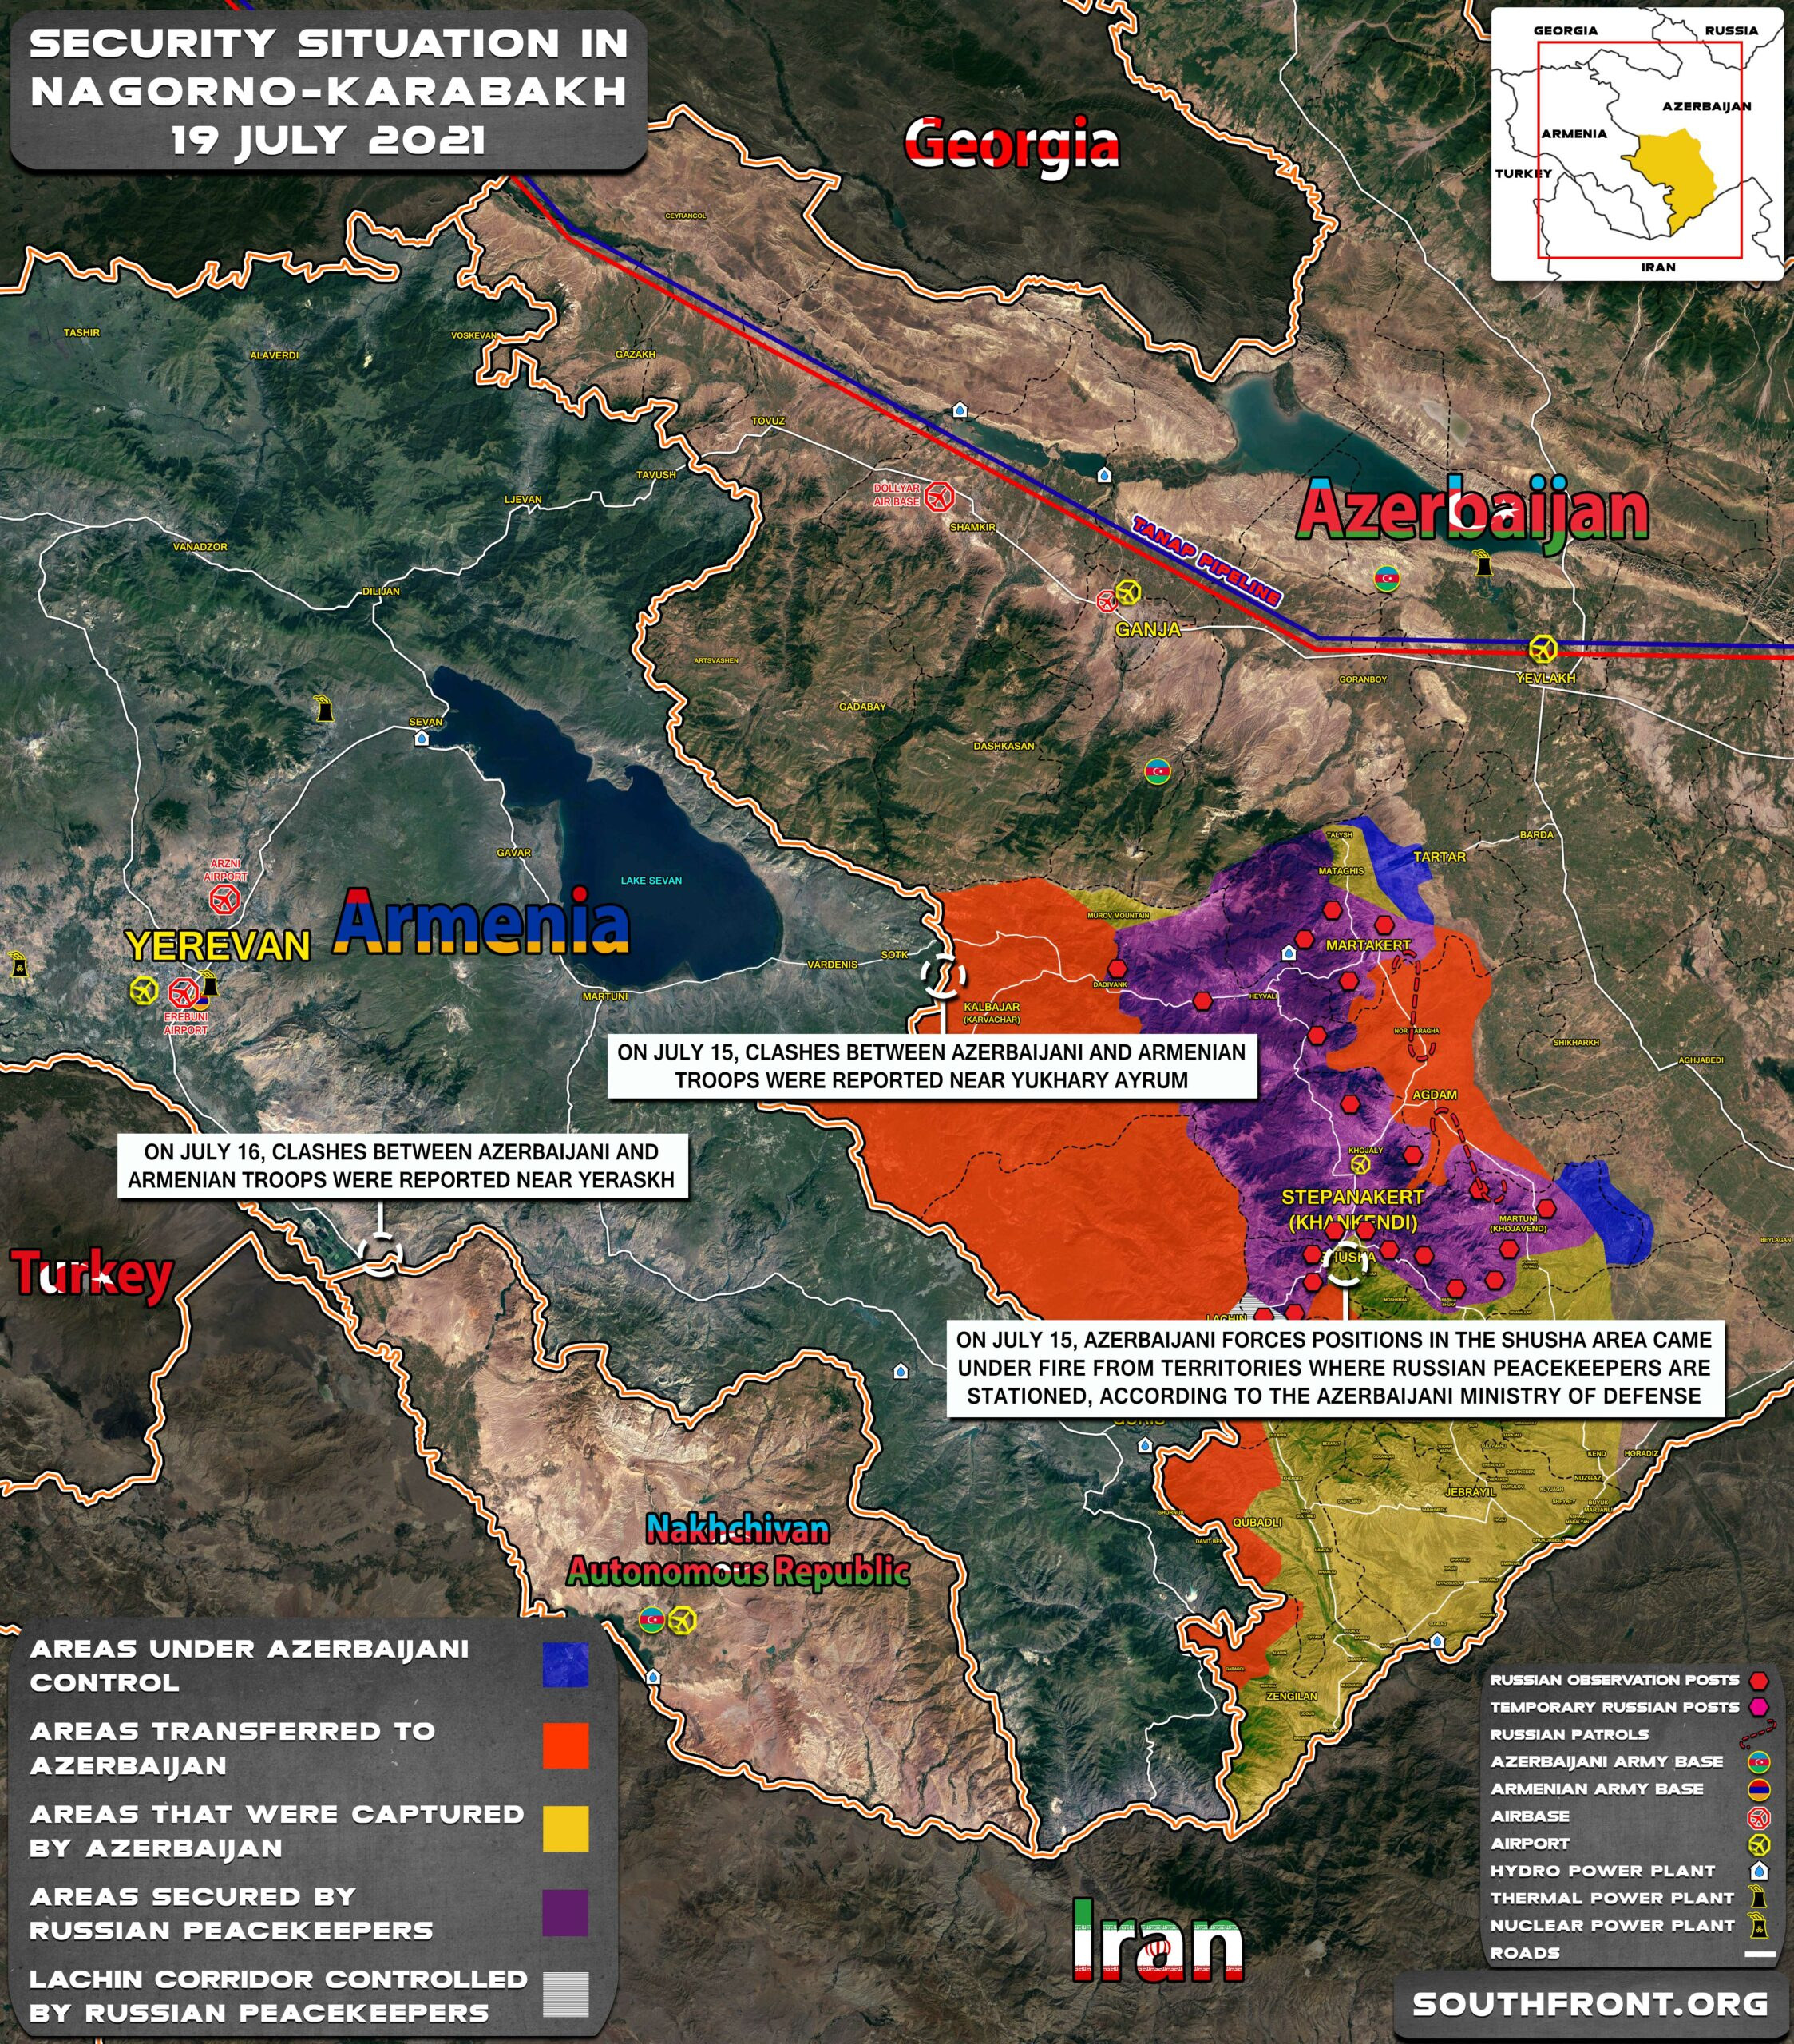 Military Situation In Nagorno-Karabakh On July 19, 2021 (Map Update)